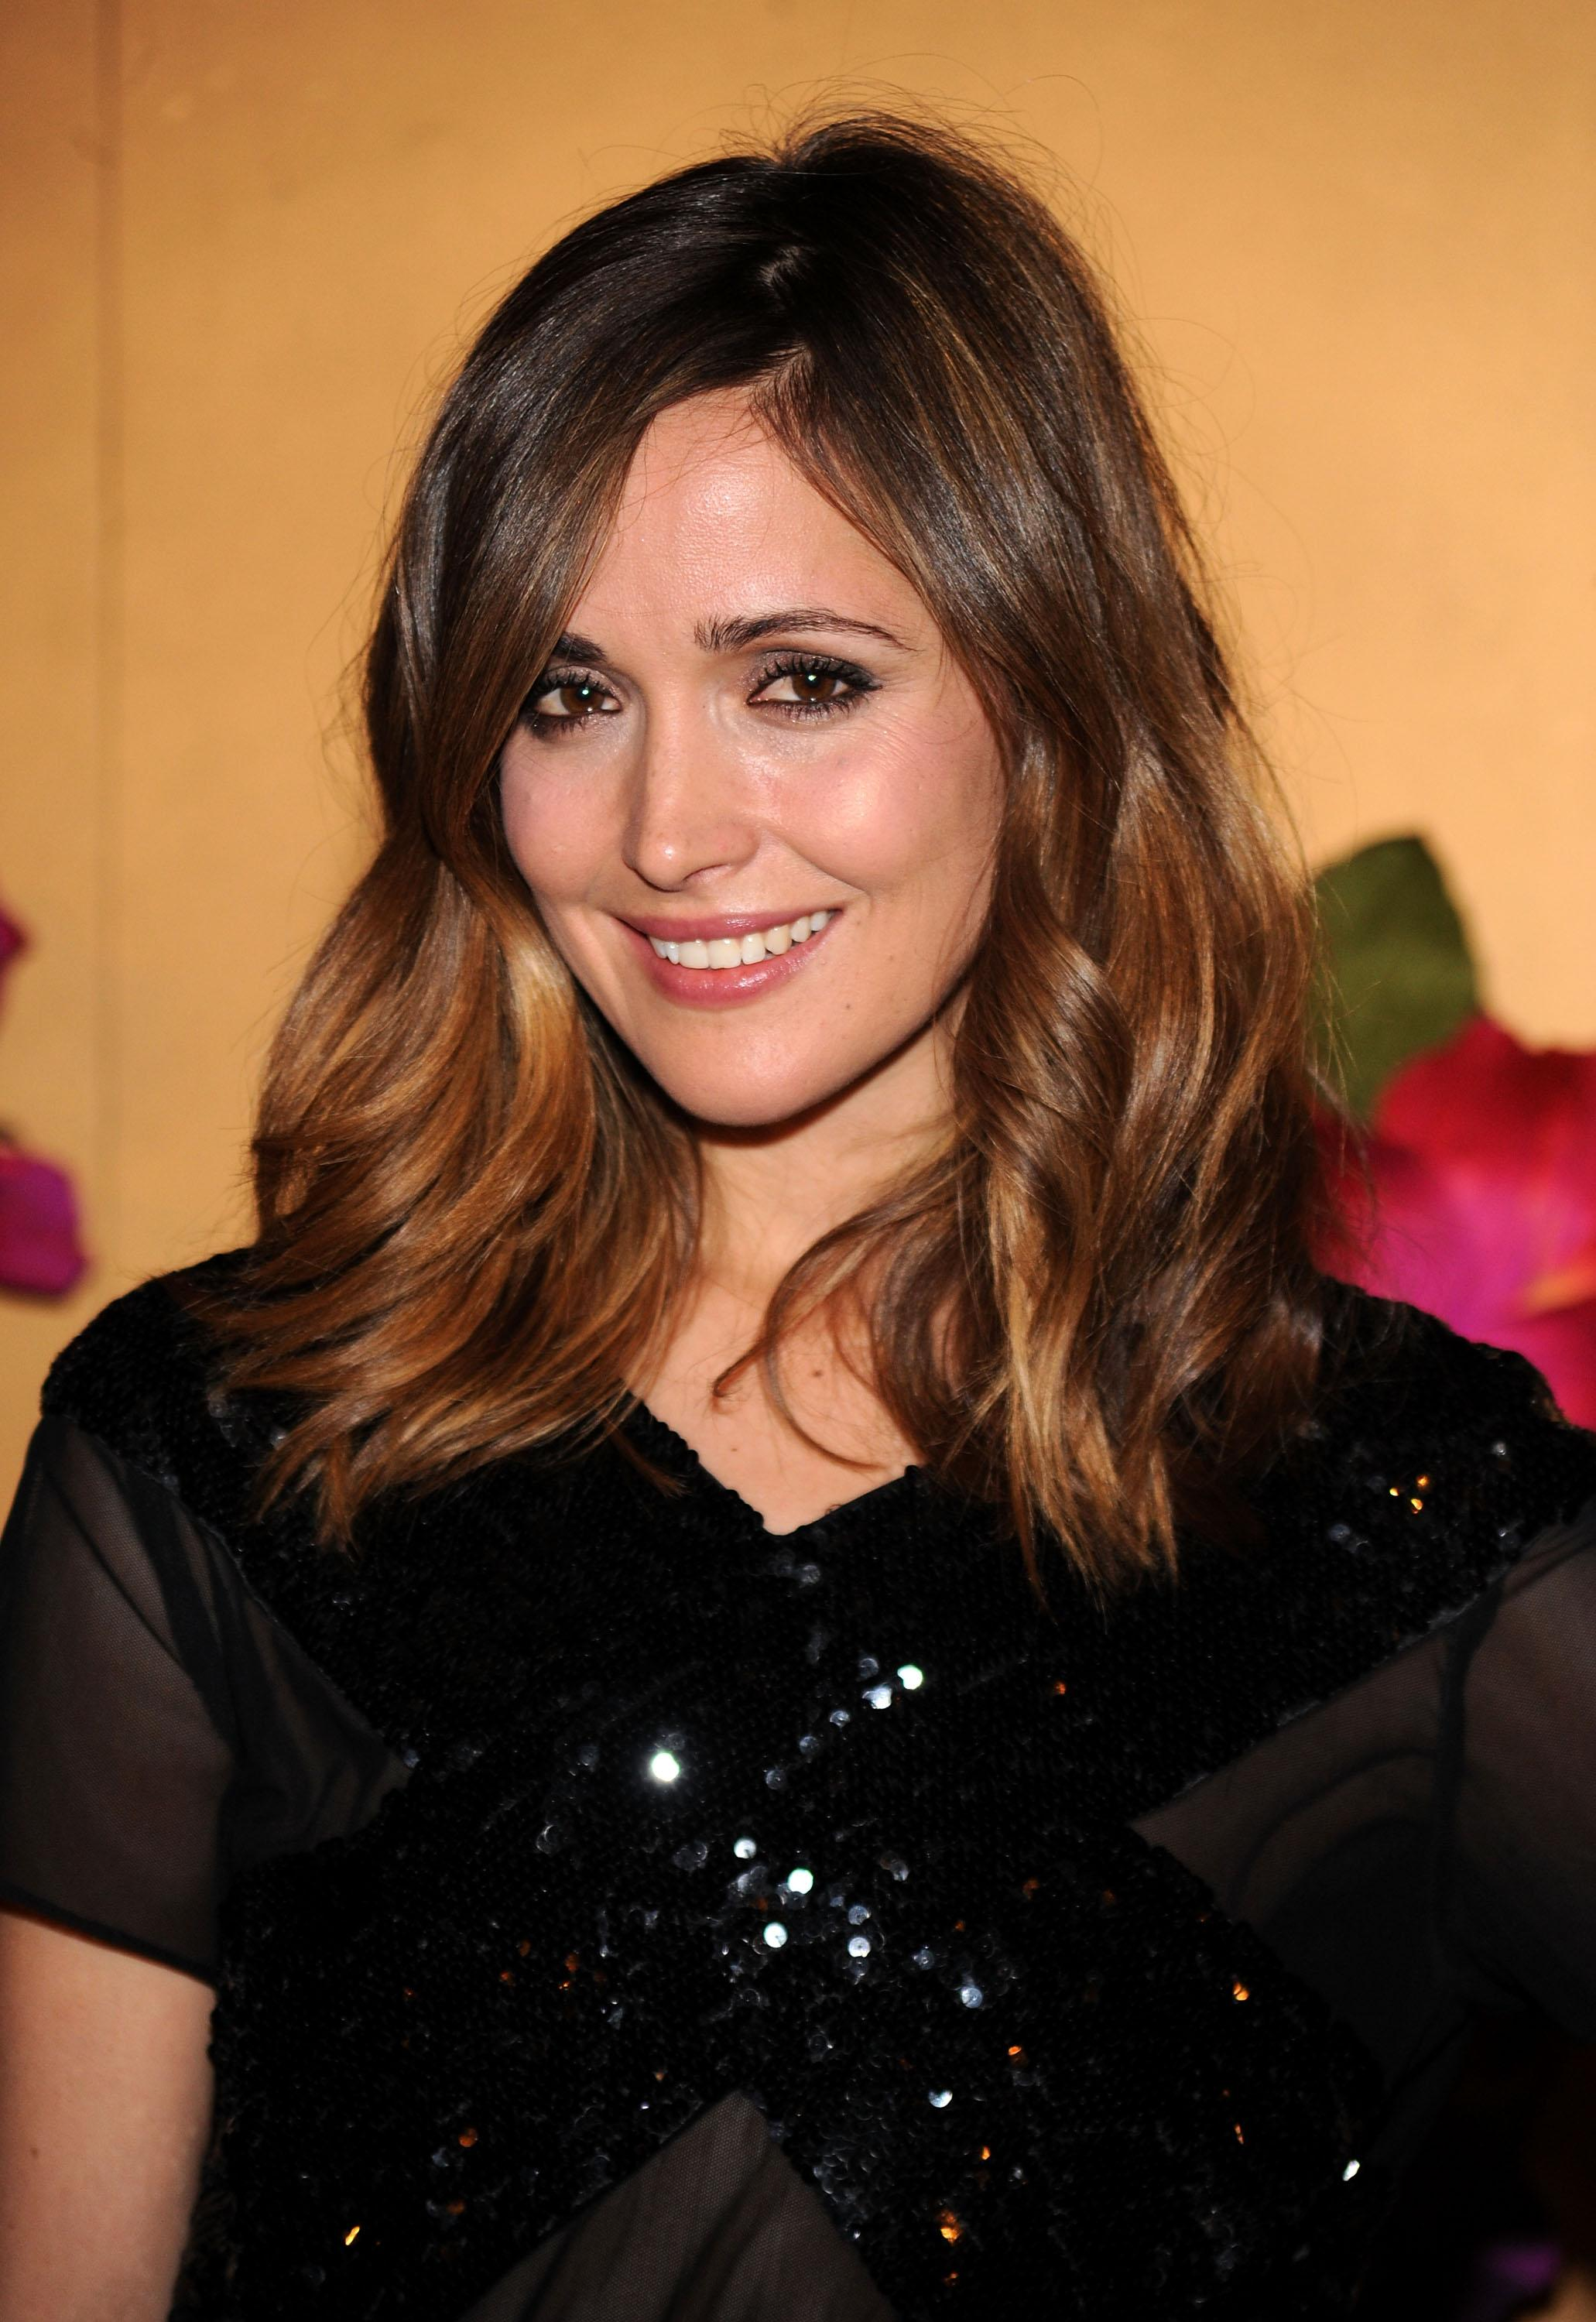 Photo №37864 Rose Byrne.